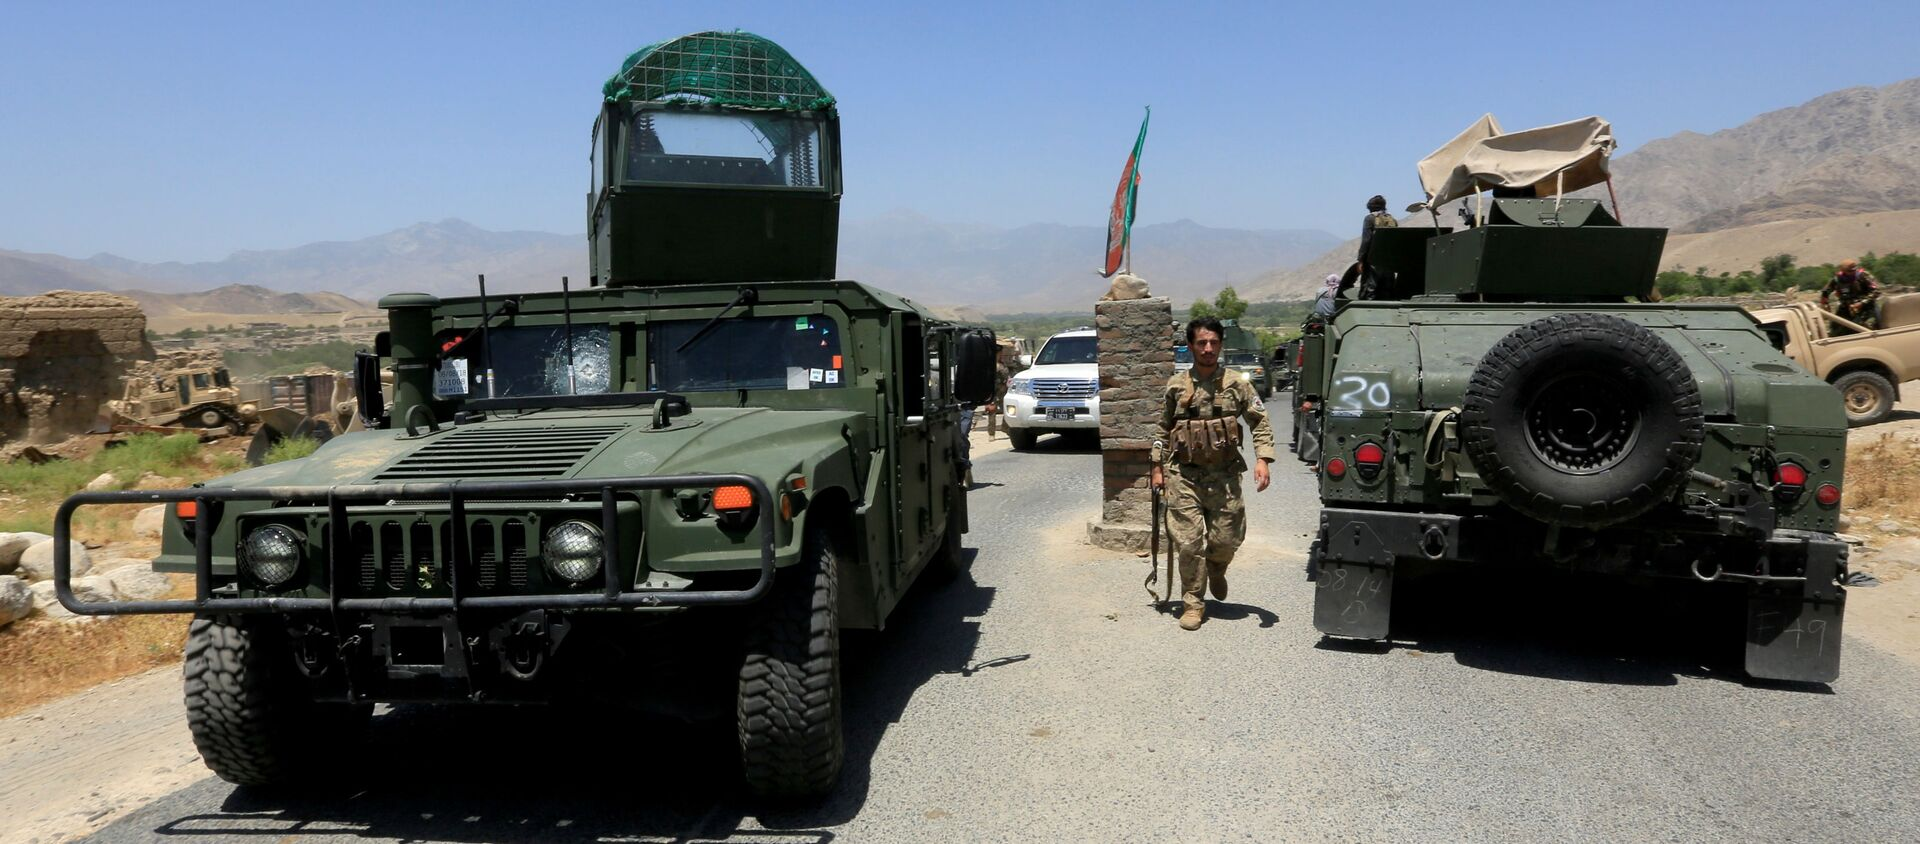 Afghan National Army (ANA) soldiers patrol the area near a checkpoint recaptured from the Taliban, in the Alishing district of Laghman province, Afghanistan, 8 July 2021 - Sputnik International, 1920, 17.07.2021